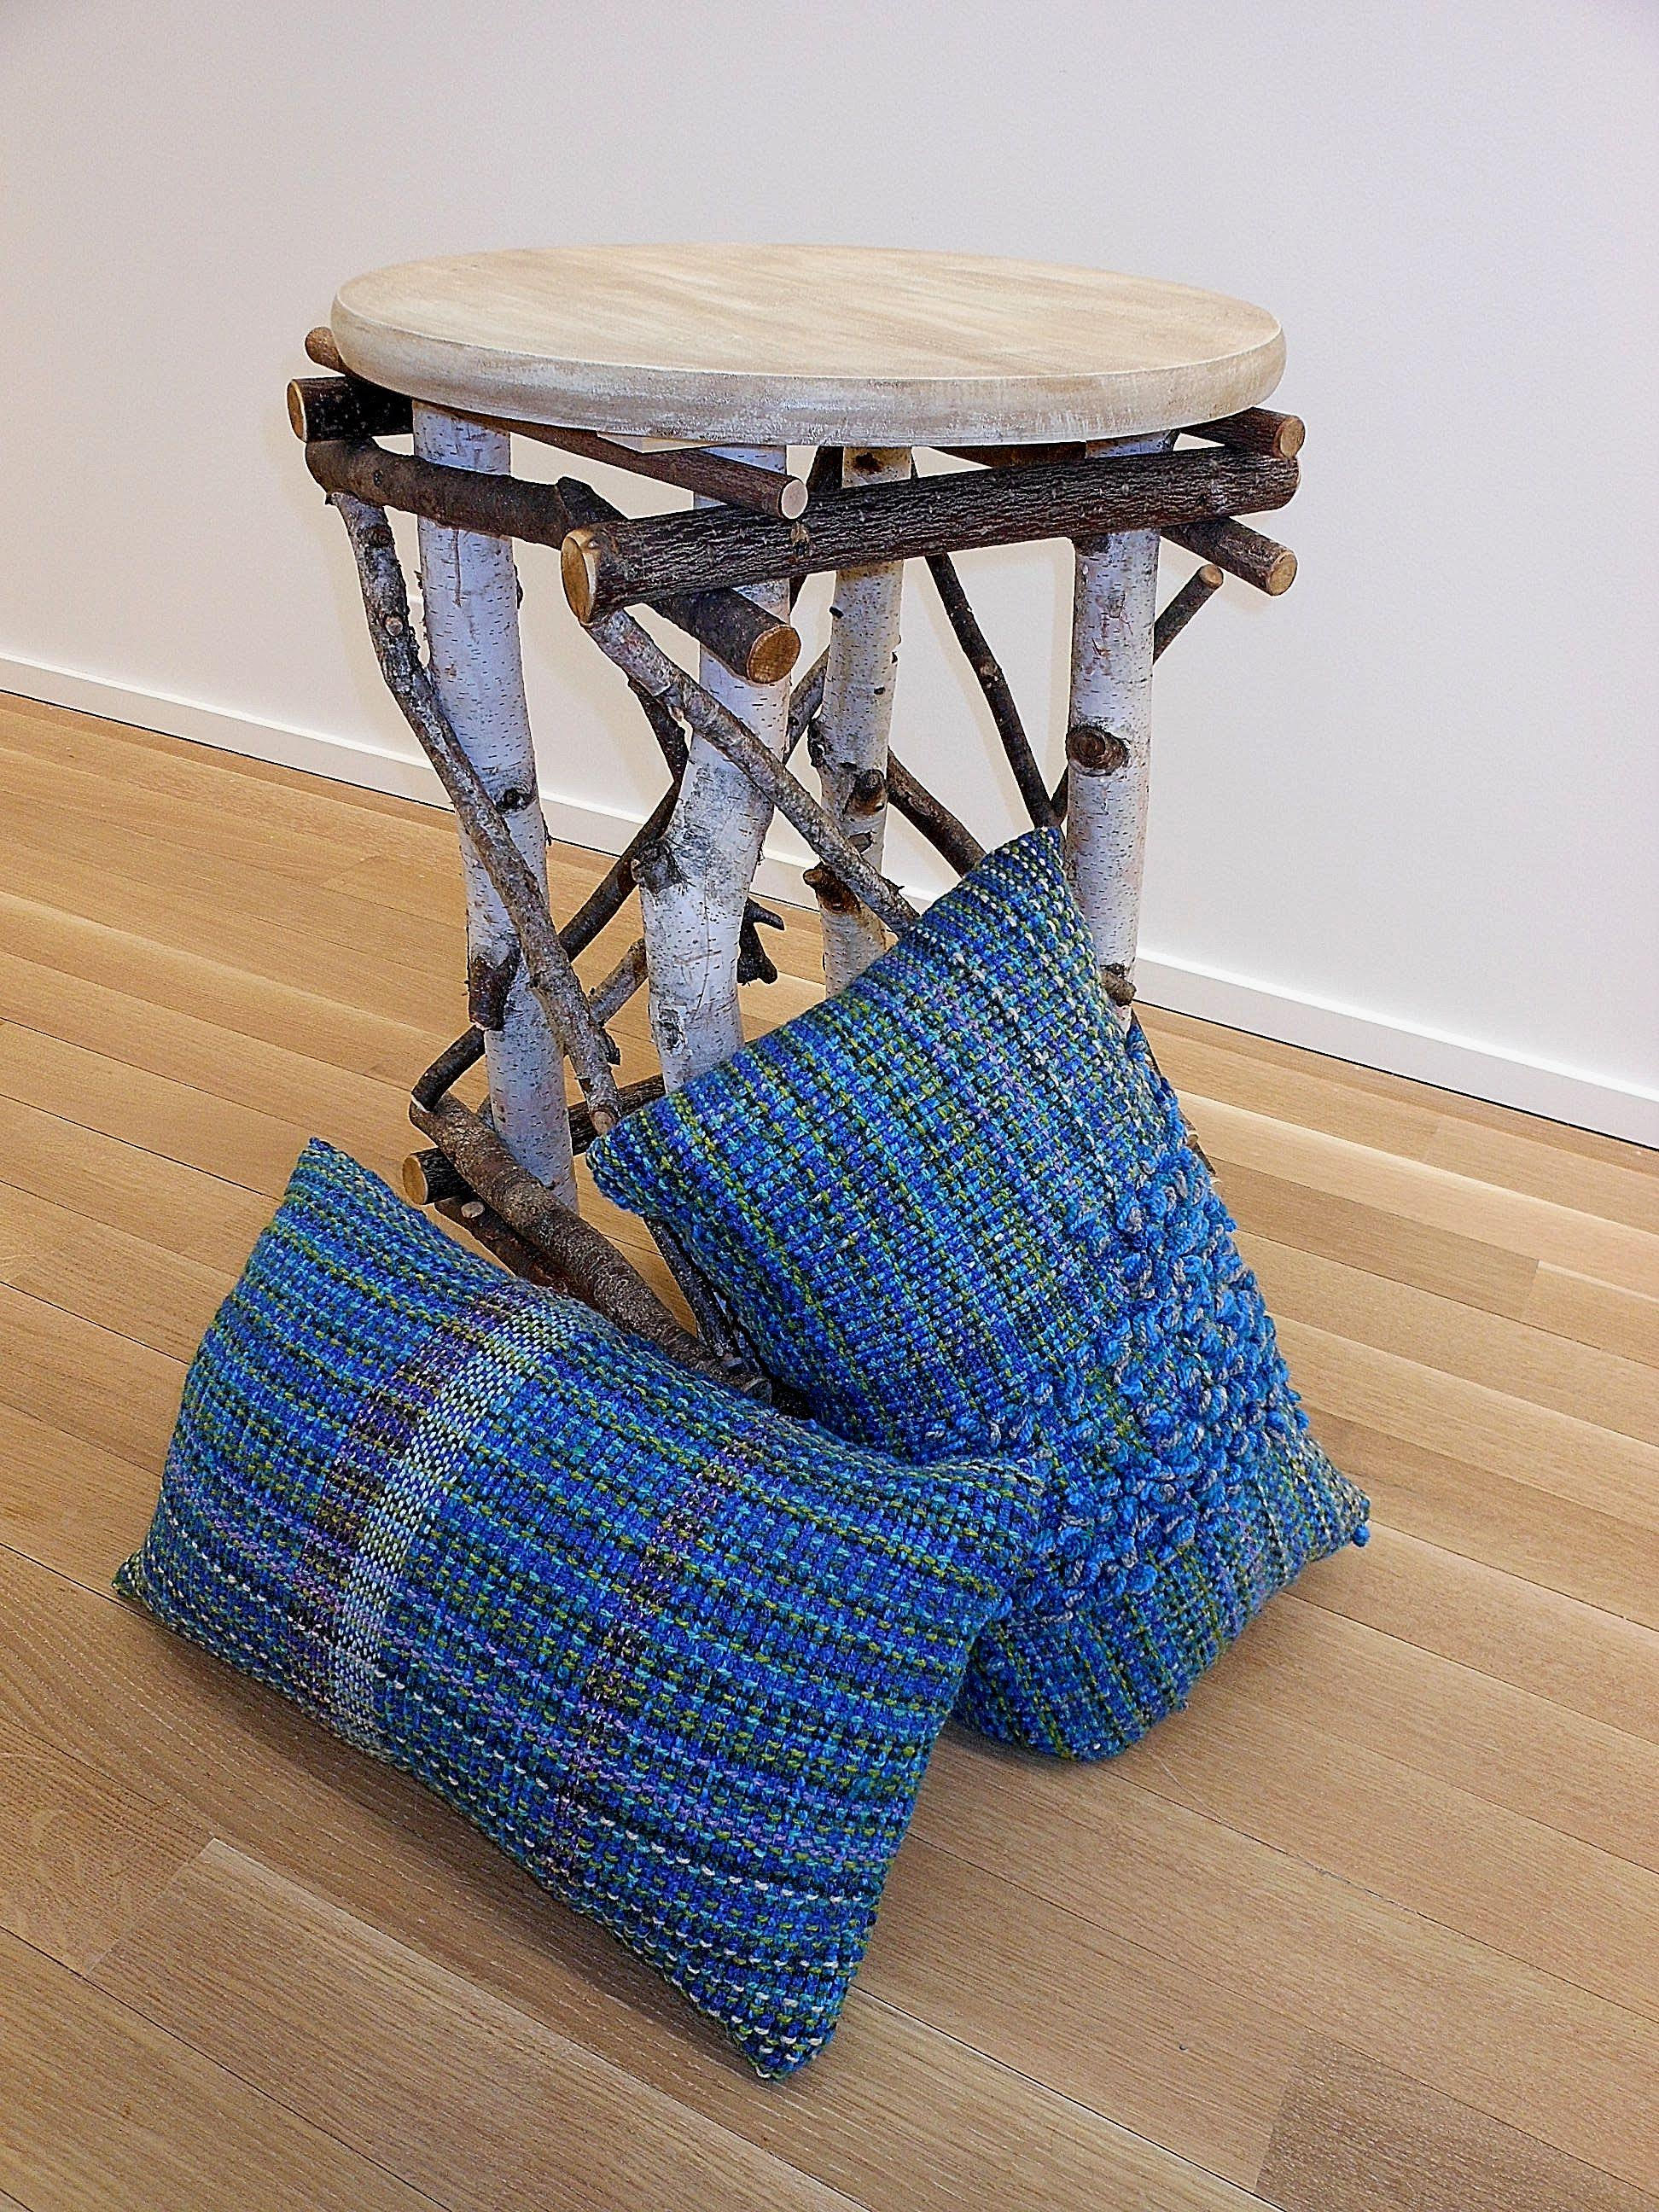 "Cathy Siterlit, Birch Twig Table [24"" high] with handwoven throw pillows"